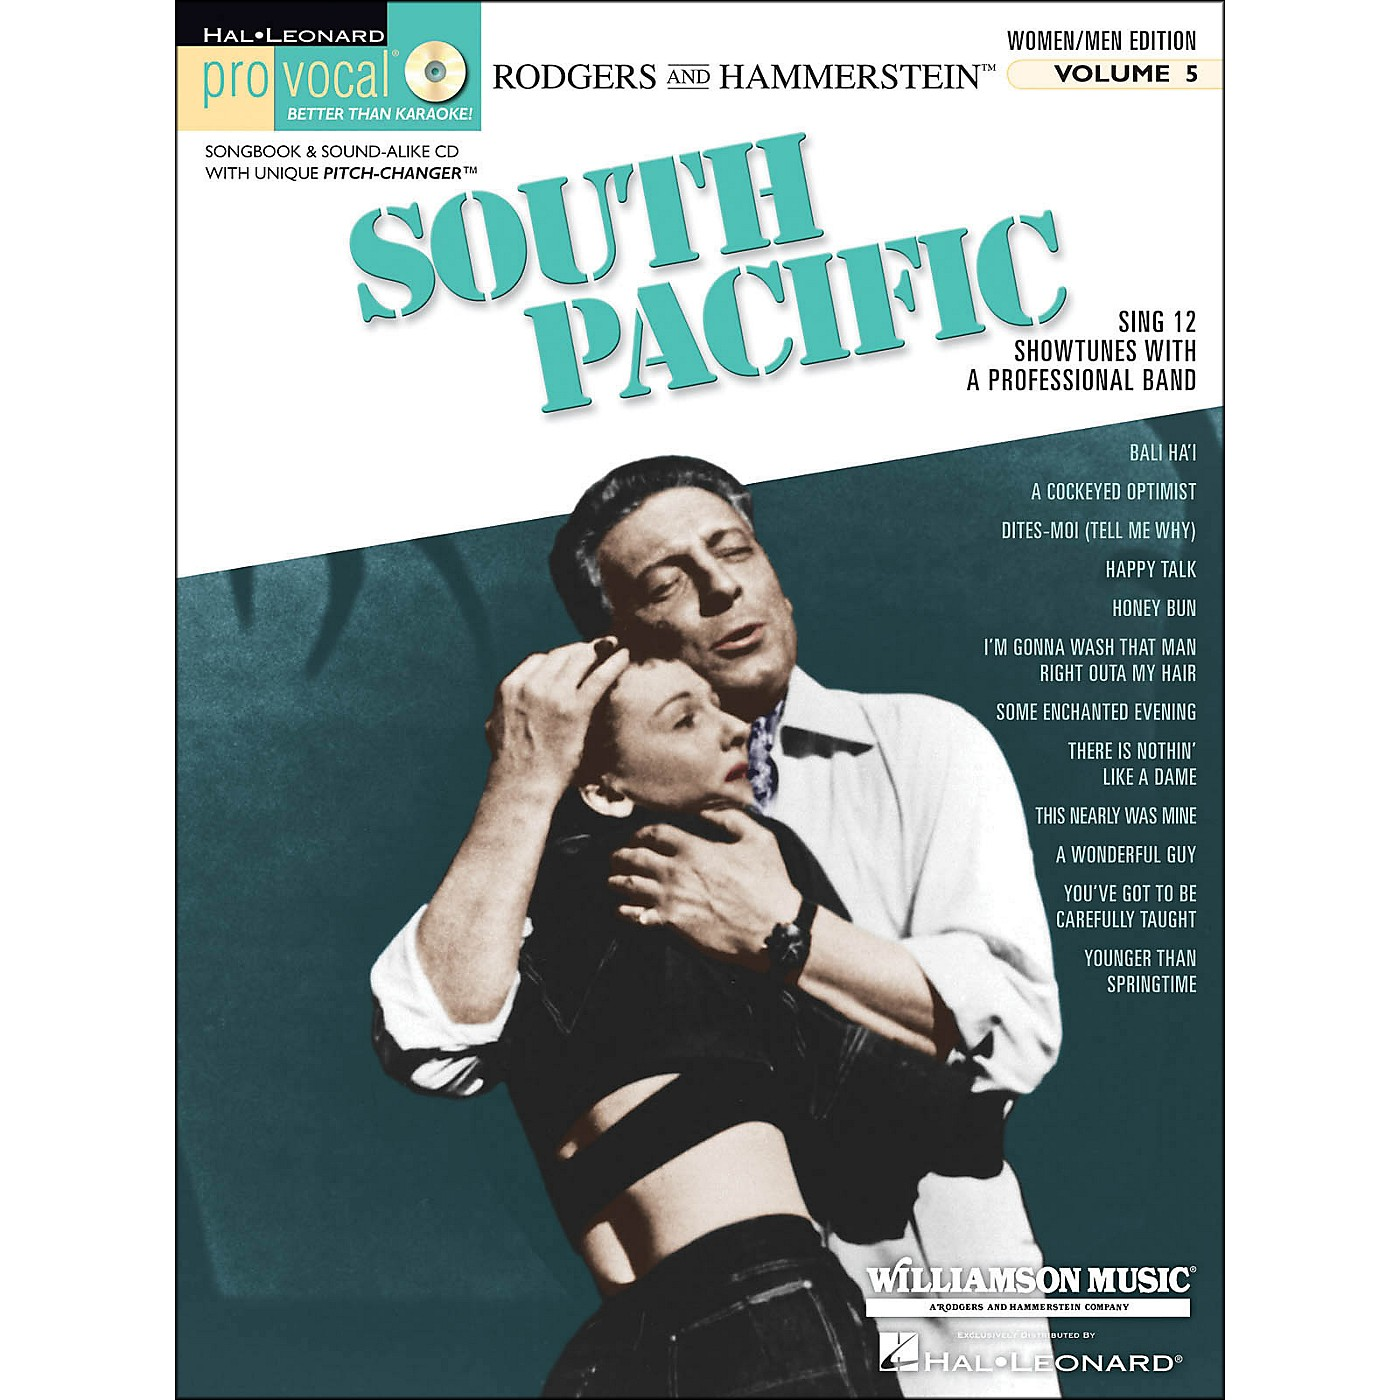 Hal Leonard South Pacific - Pro Vocal Songbook & CD for Women/Men Volume 5 thumbnail